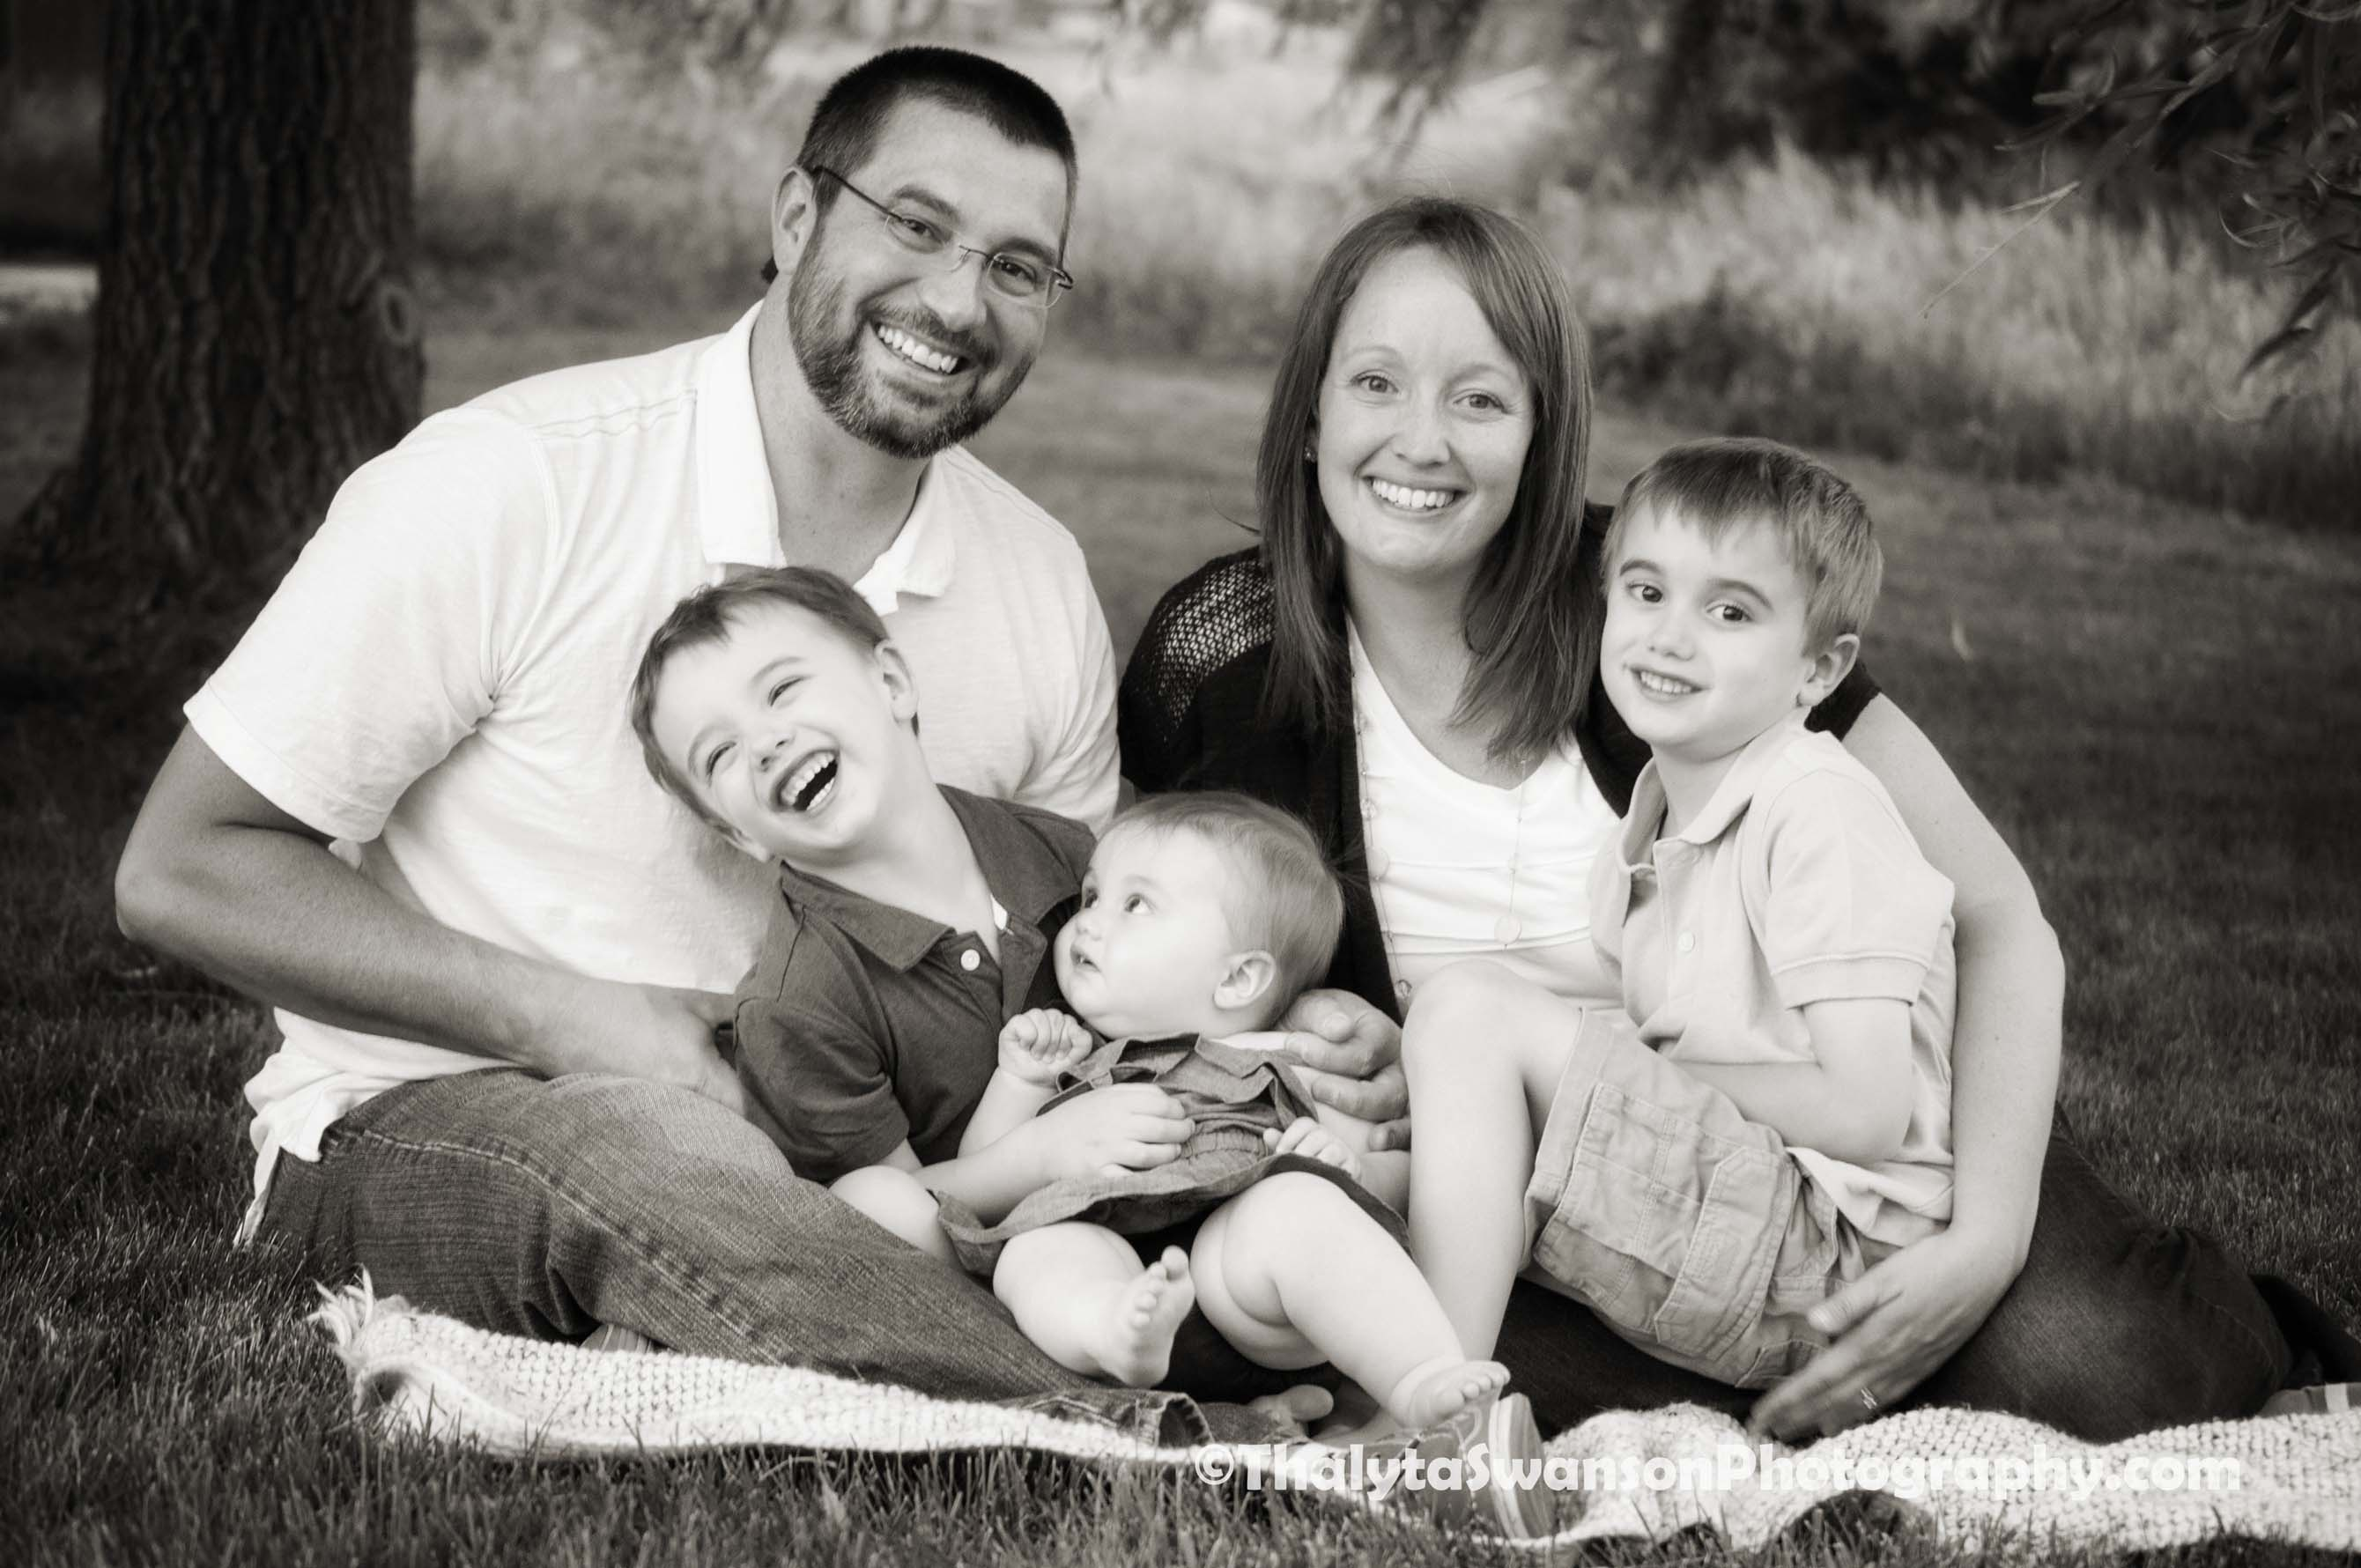 Frank Family Photo Session - Fort Collins Photography (13)